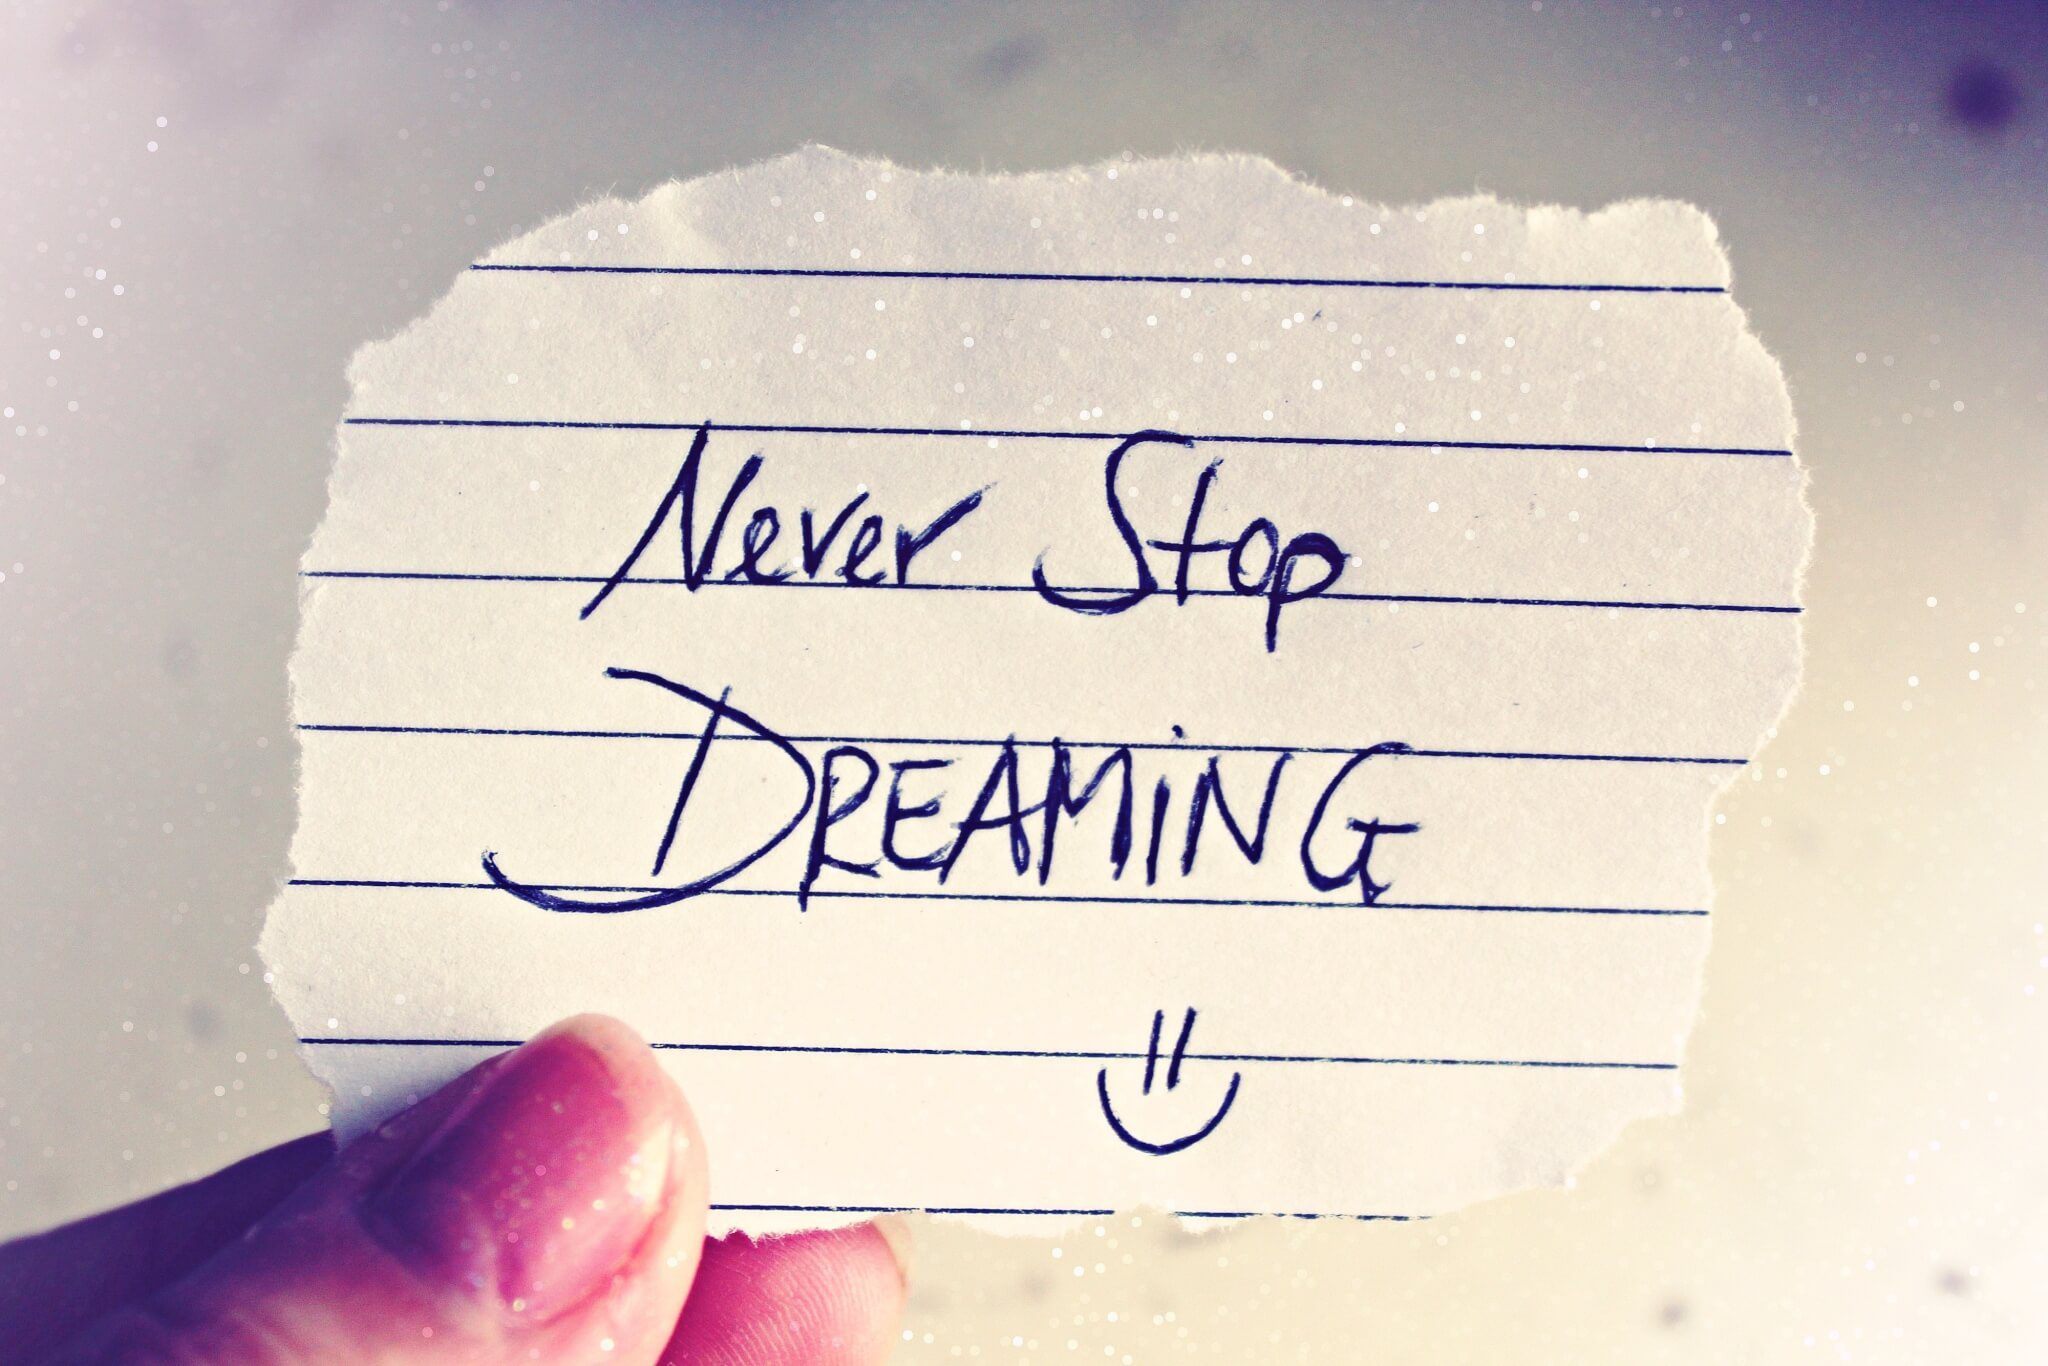 Never stop dreaming - it's never too late to fulfill your dream.